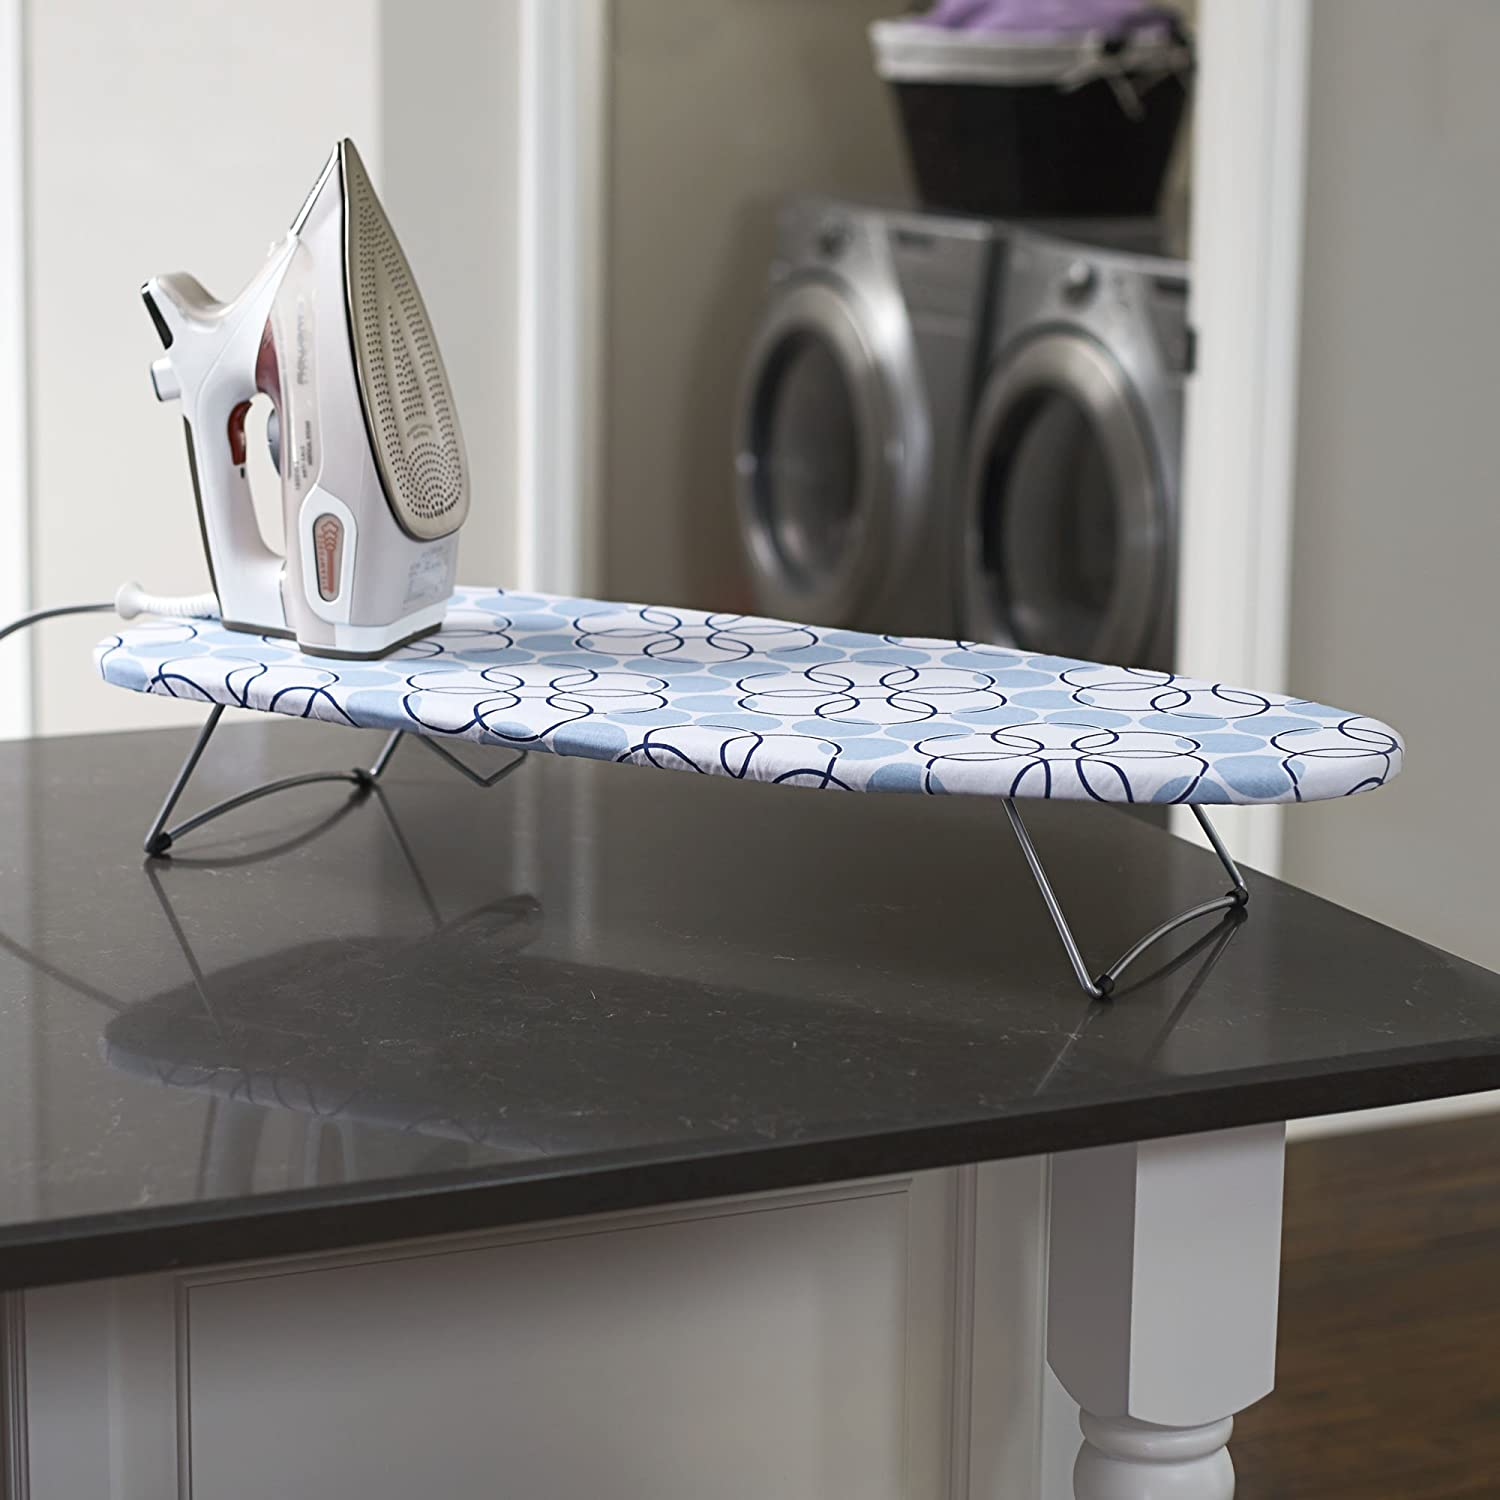 Extendable ironing board - convenient equipment for small apartments